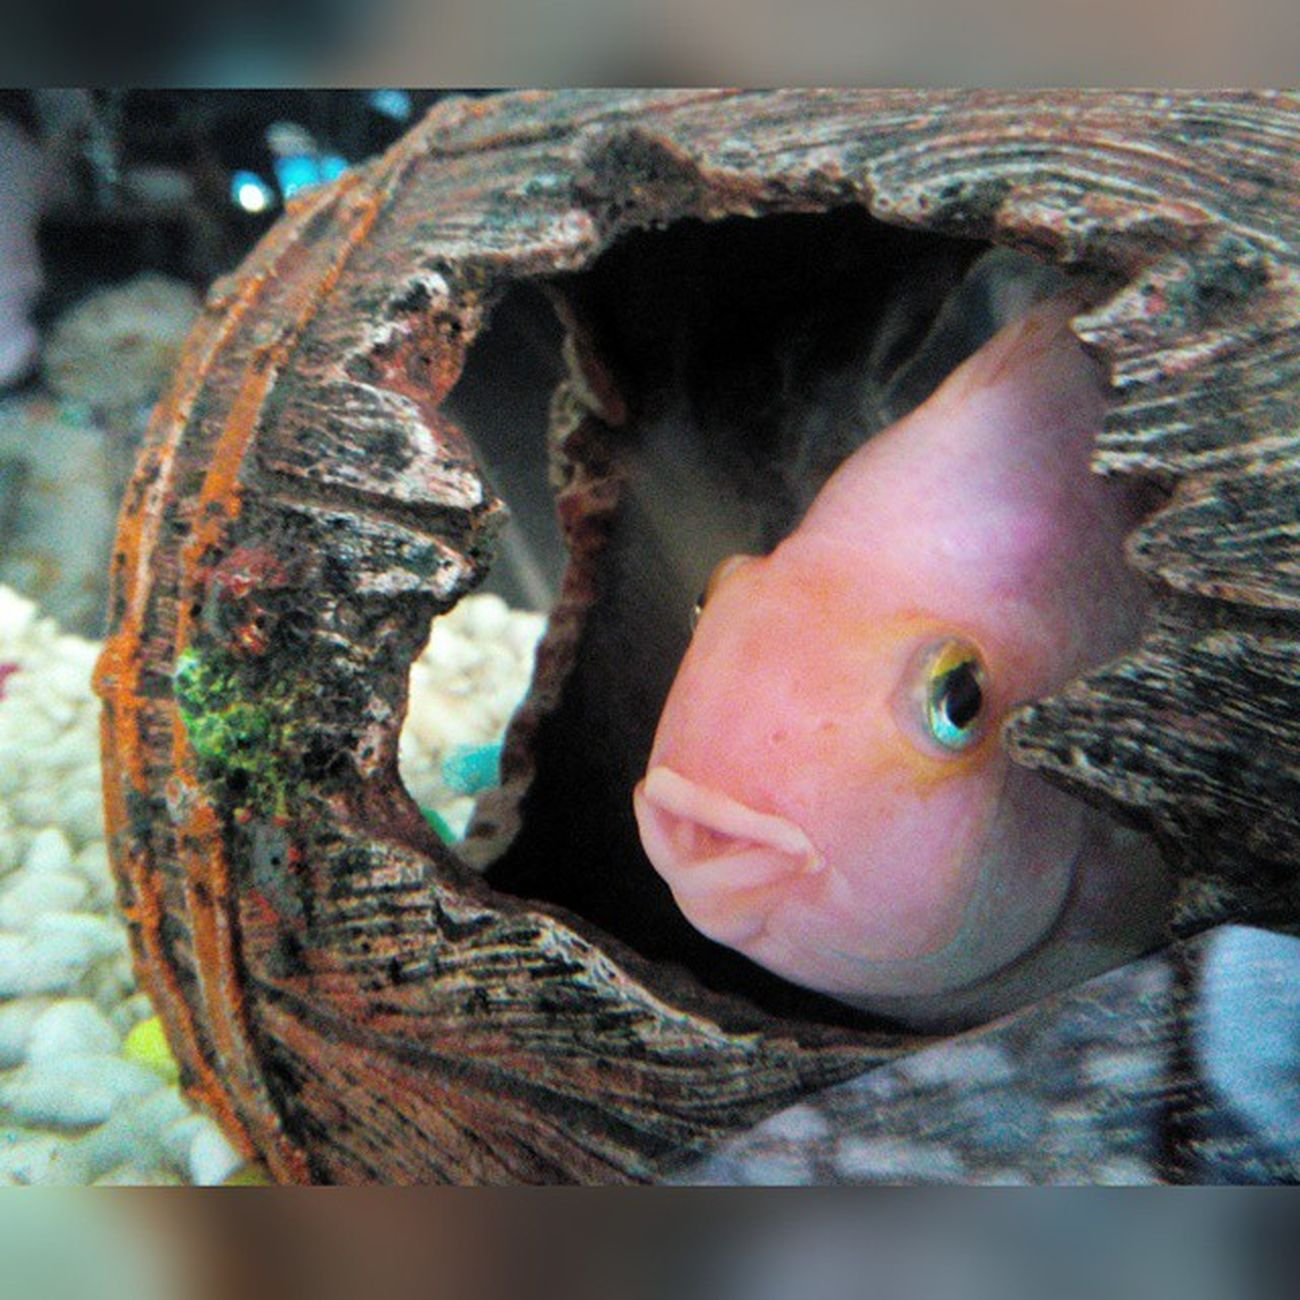 Beauty of d aquarium Love dis fish 🐠 Babypink in d barrel Photooftheday Hdrimage Hdr_gallery Hdr_love Hdrfreak Hdrama Hdrart HDRphoto Hdrfusion Hdrmania Hdrstyles Ihdr Str8hdr Hdr_edits Canvas 4 click 😍 1/2*